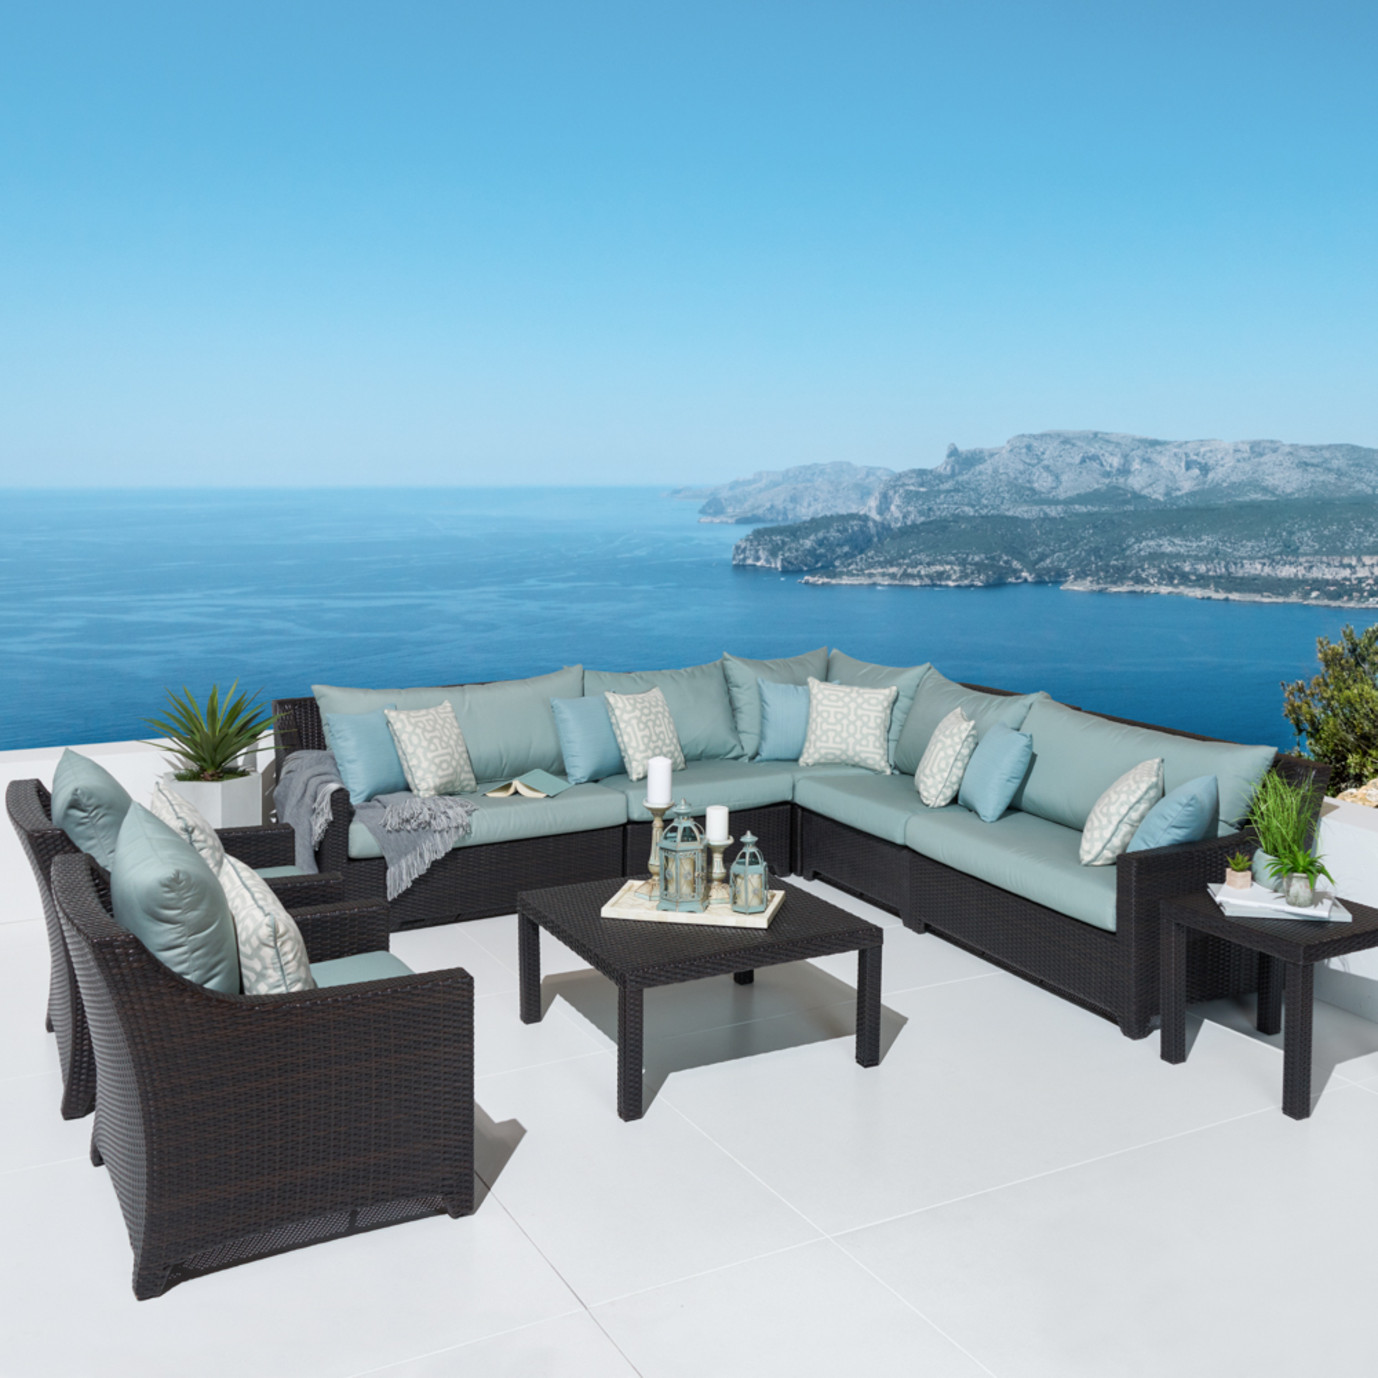 Deco™ 9pc Sectional and Club Set - Spa Blue